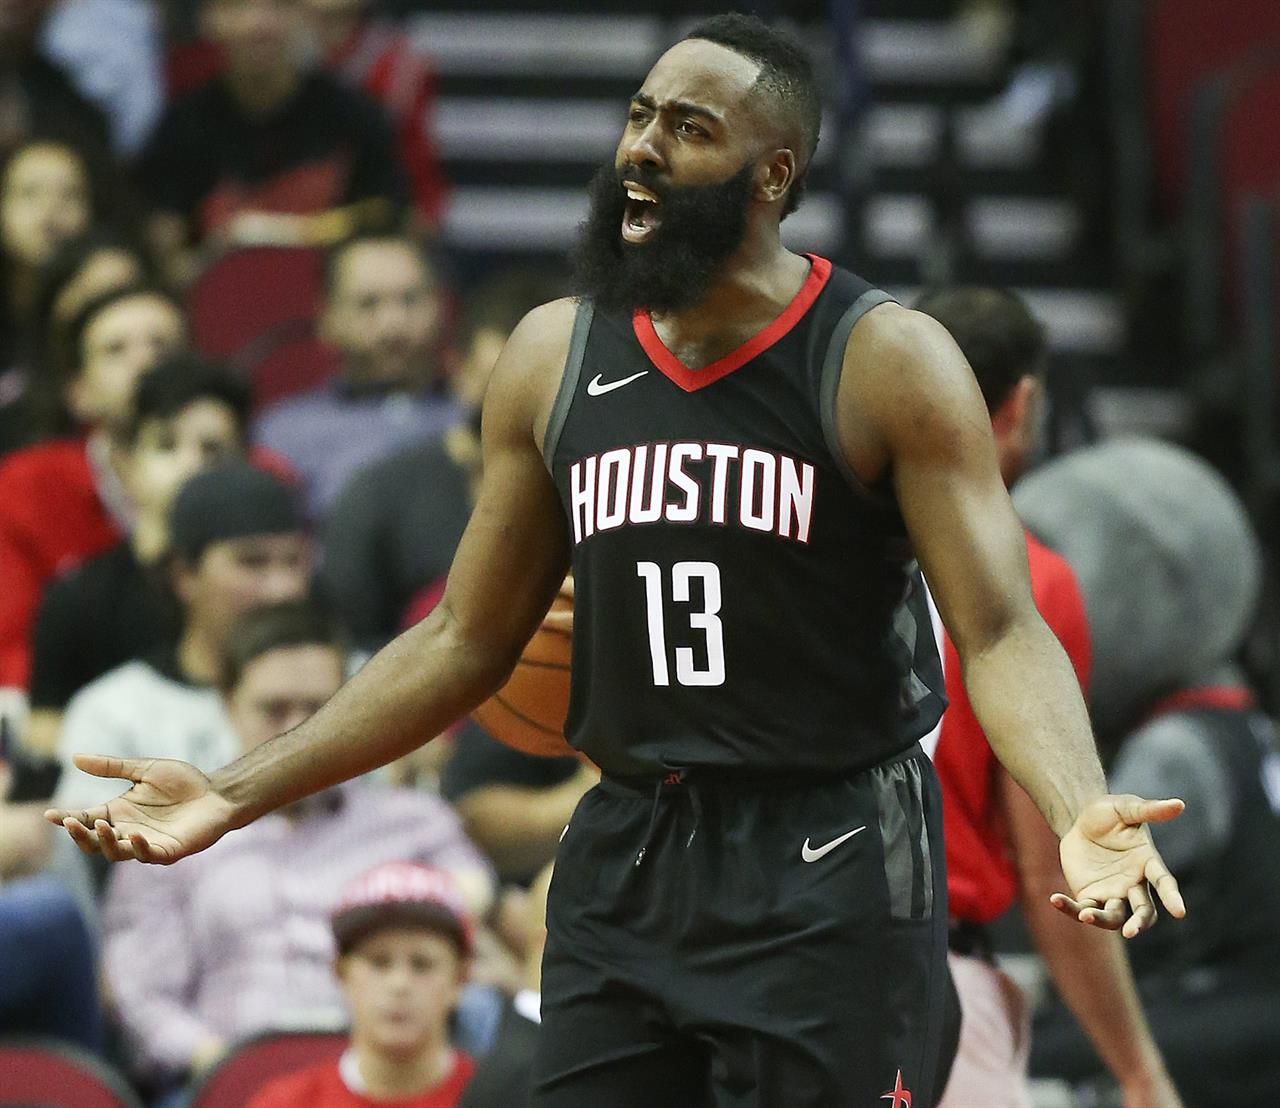 James Harden Basketball Camp: Harden Leads Rockets To 117-102 Win Over Knicks